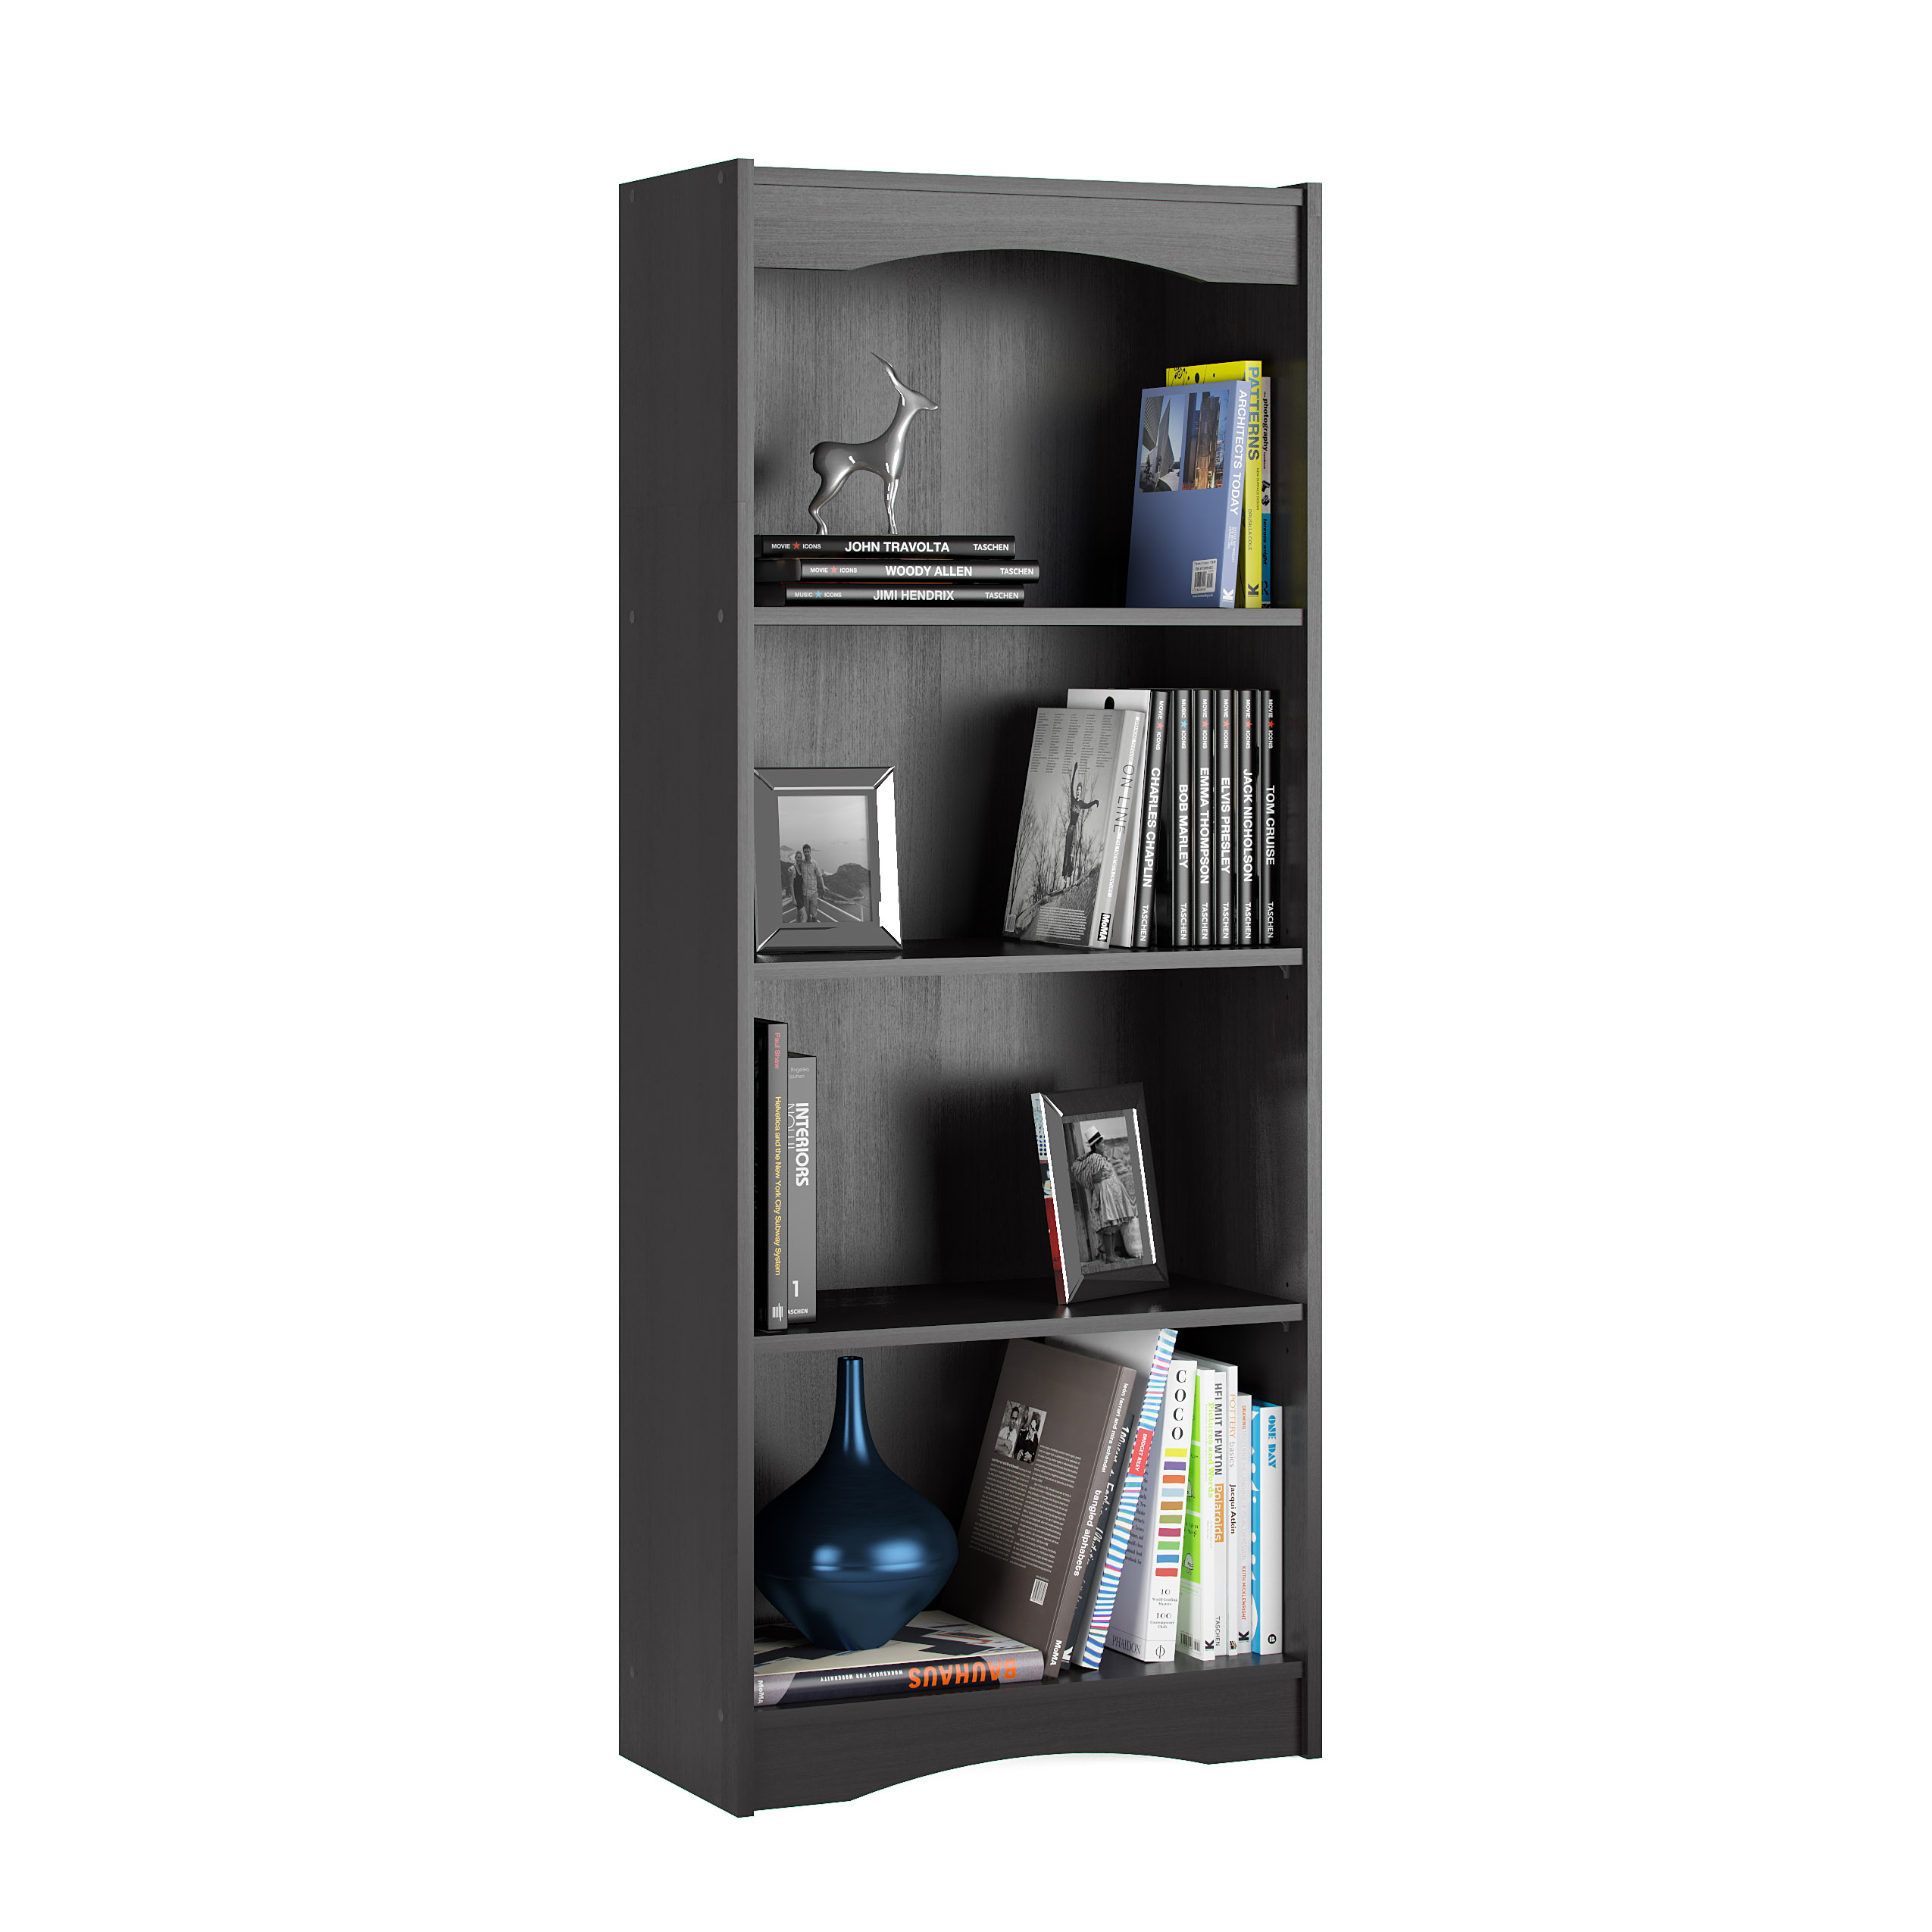 Hawthorn 60 Tall Adjustable Bookcase Walmart intended for dimensions 2550 X 2550